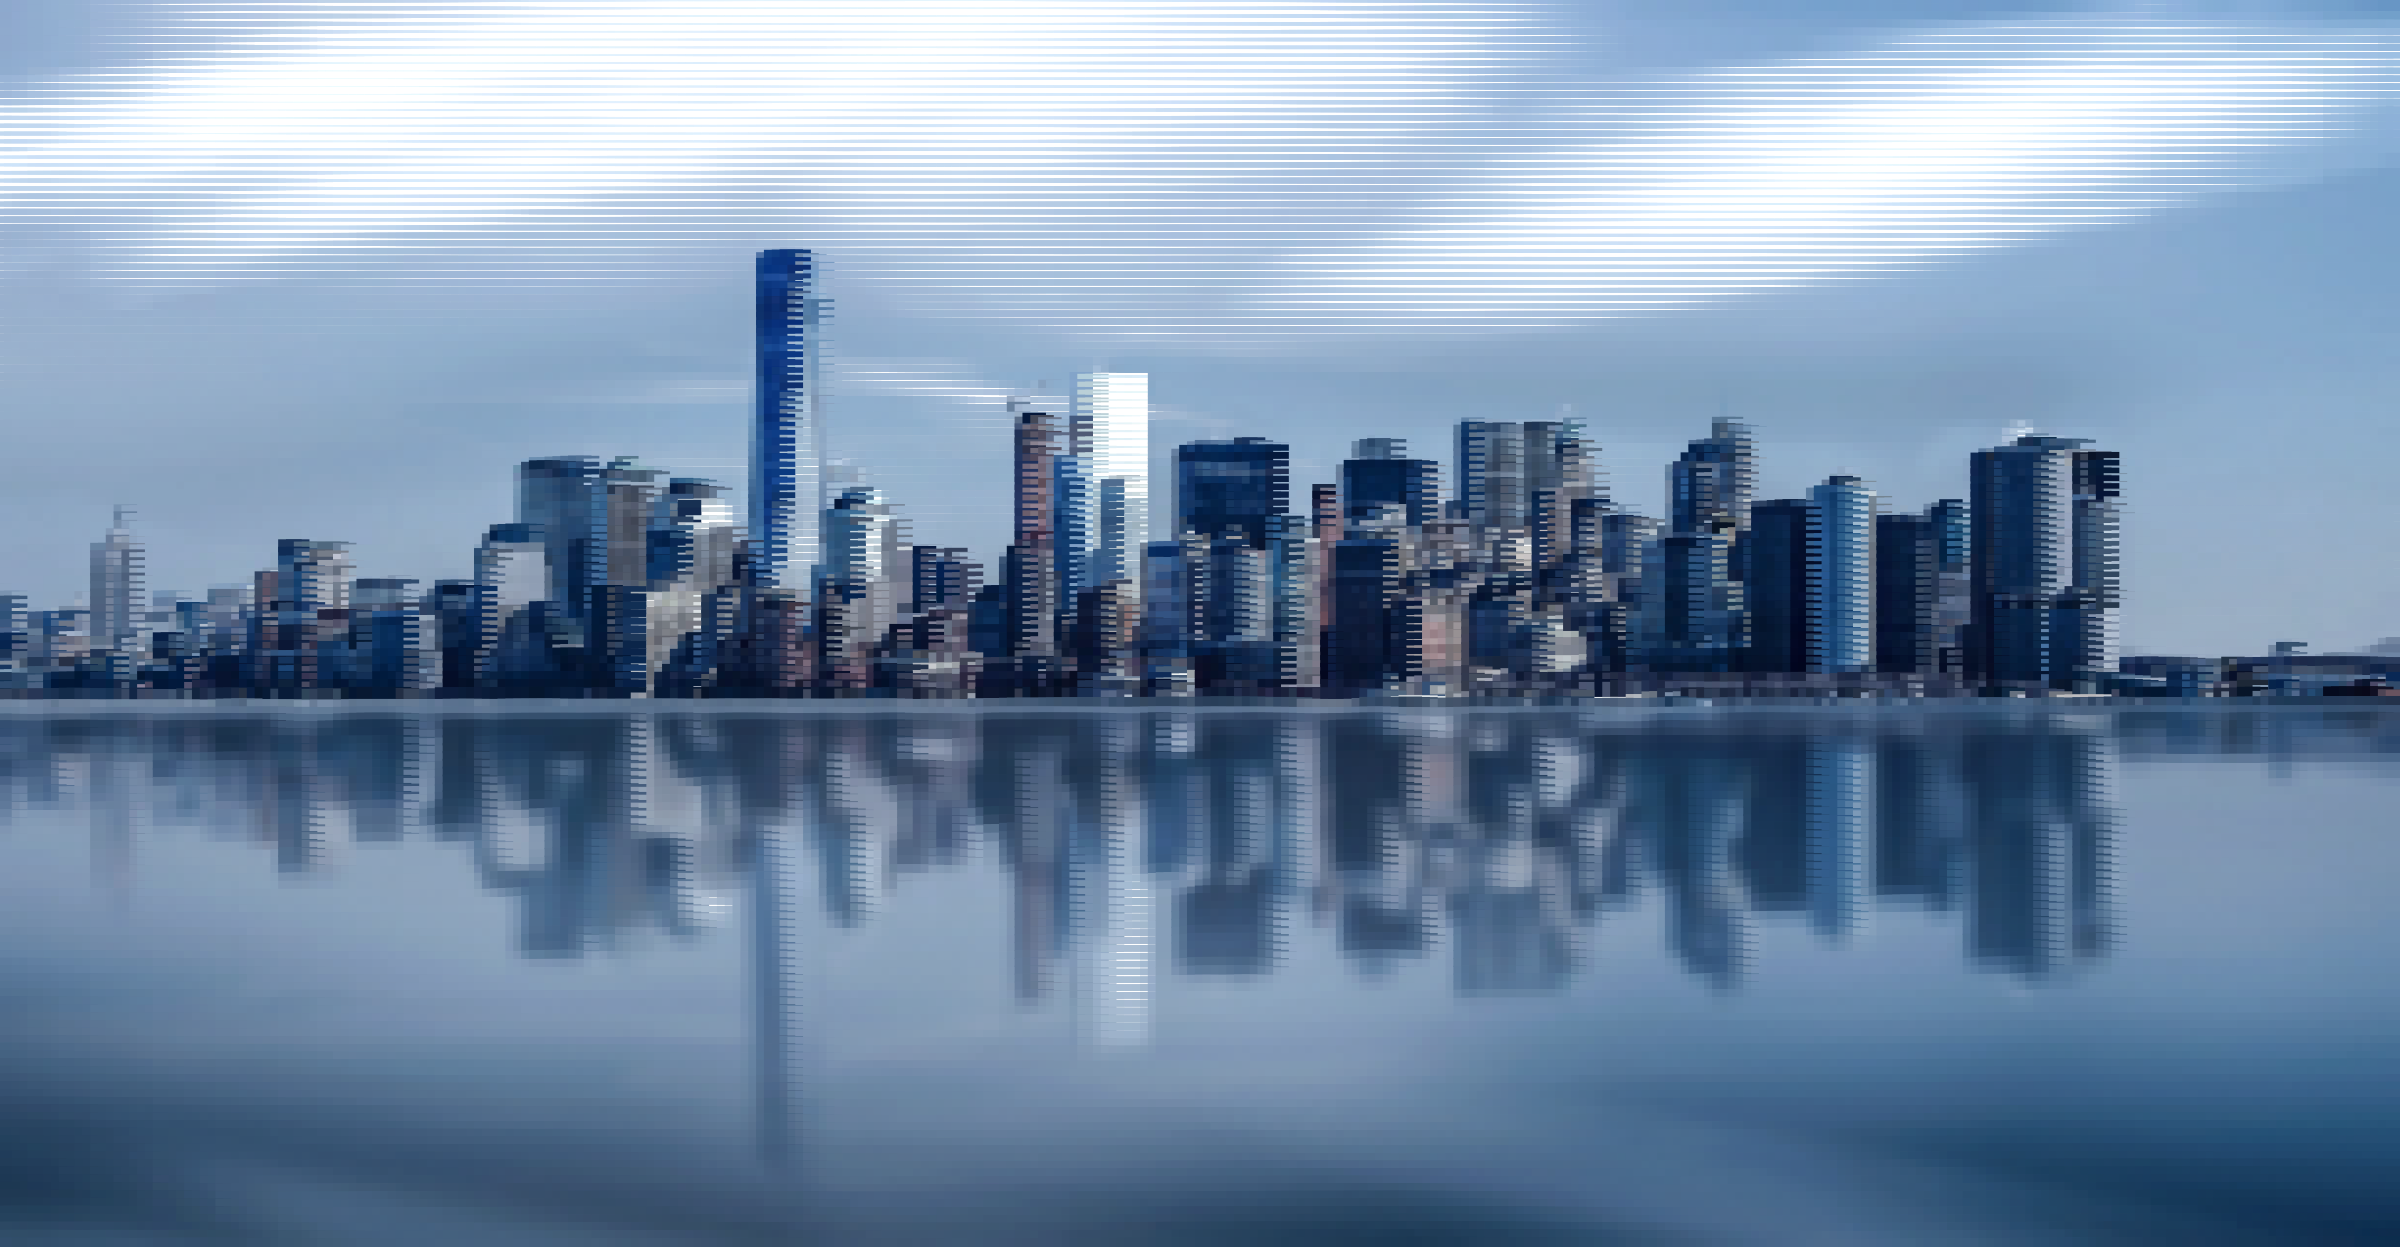 Surreal New York Skyline 2 by GDJ